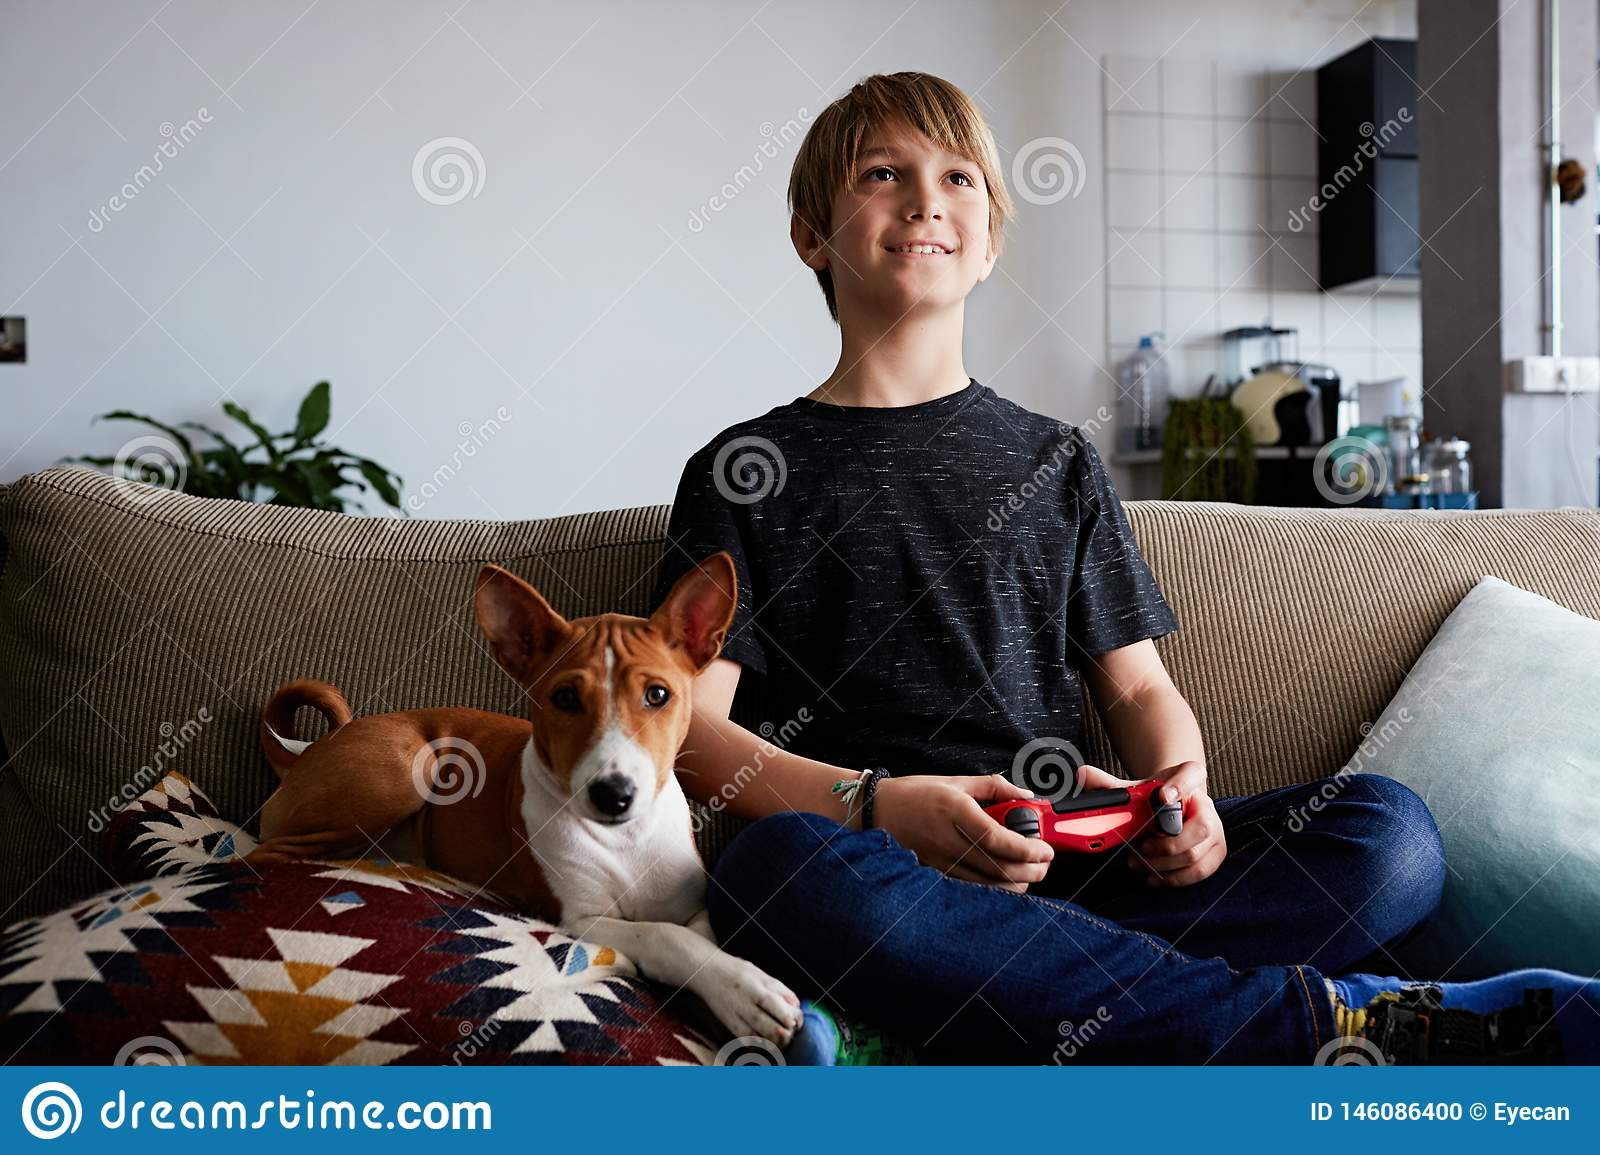 Happy Cute Boy Playing Video Game Console Seated On A Sofa With Basenji Dog Puppy Close In Living Room At Home Stock Photo Image Of Playful Concentration 146086400